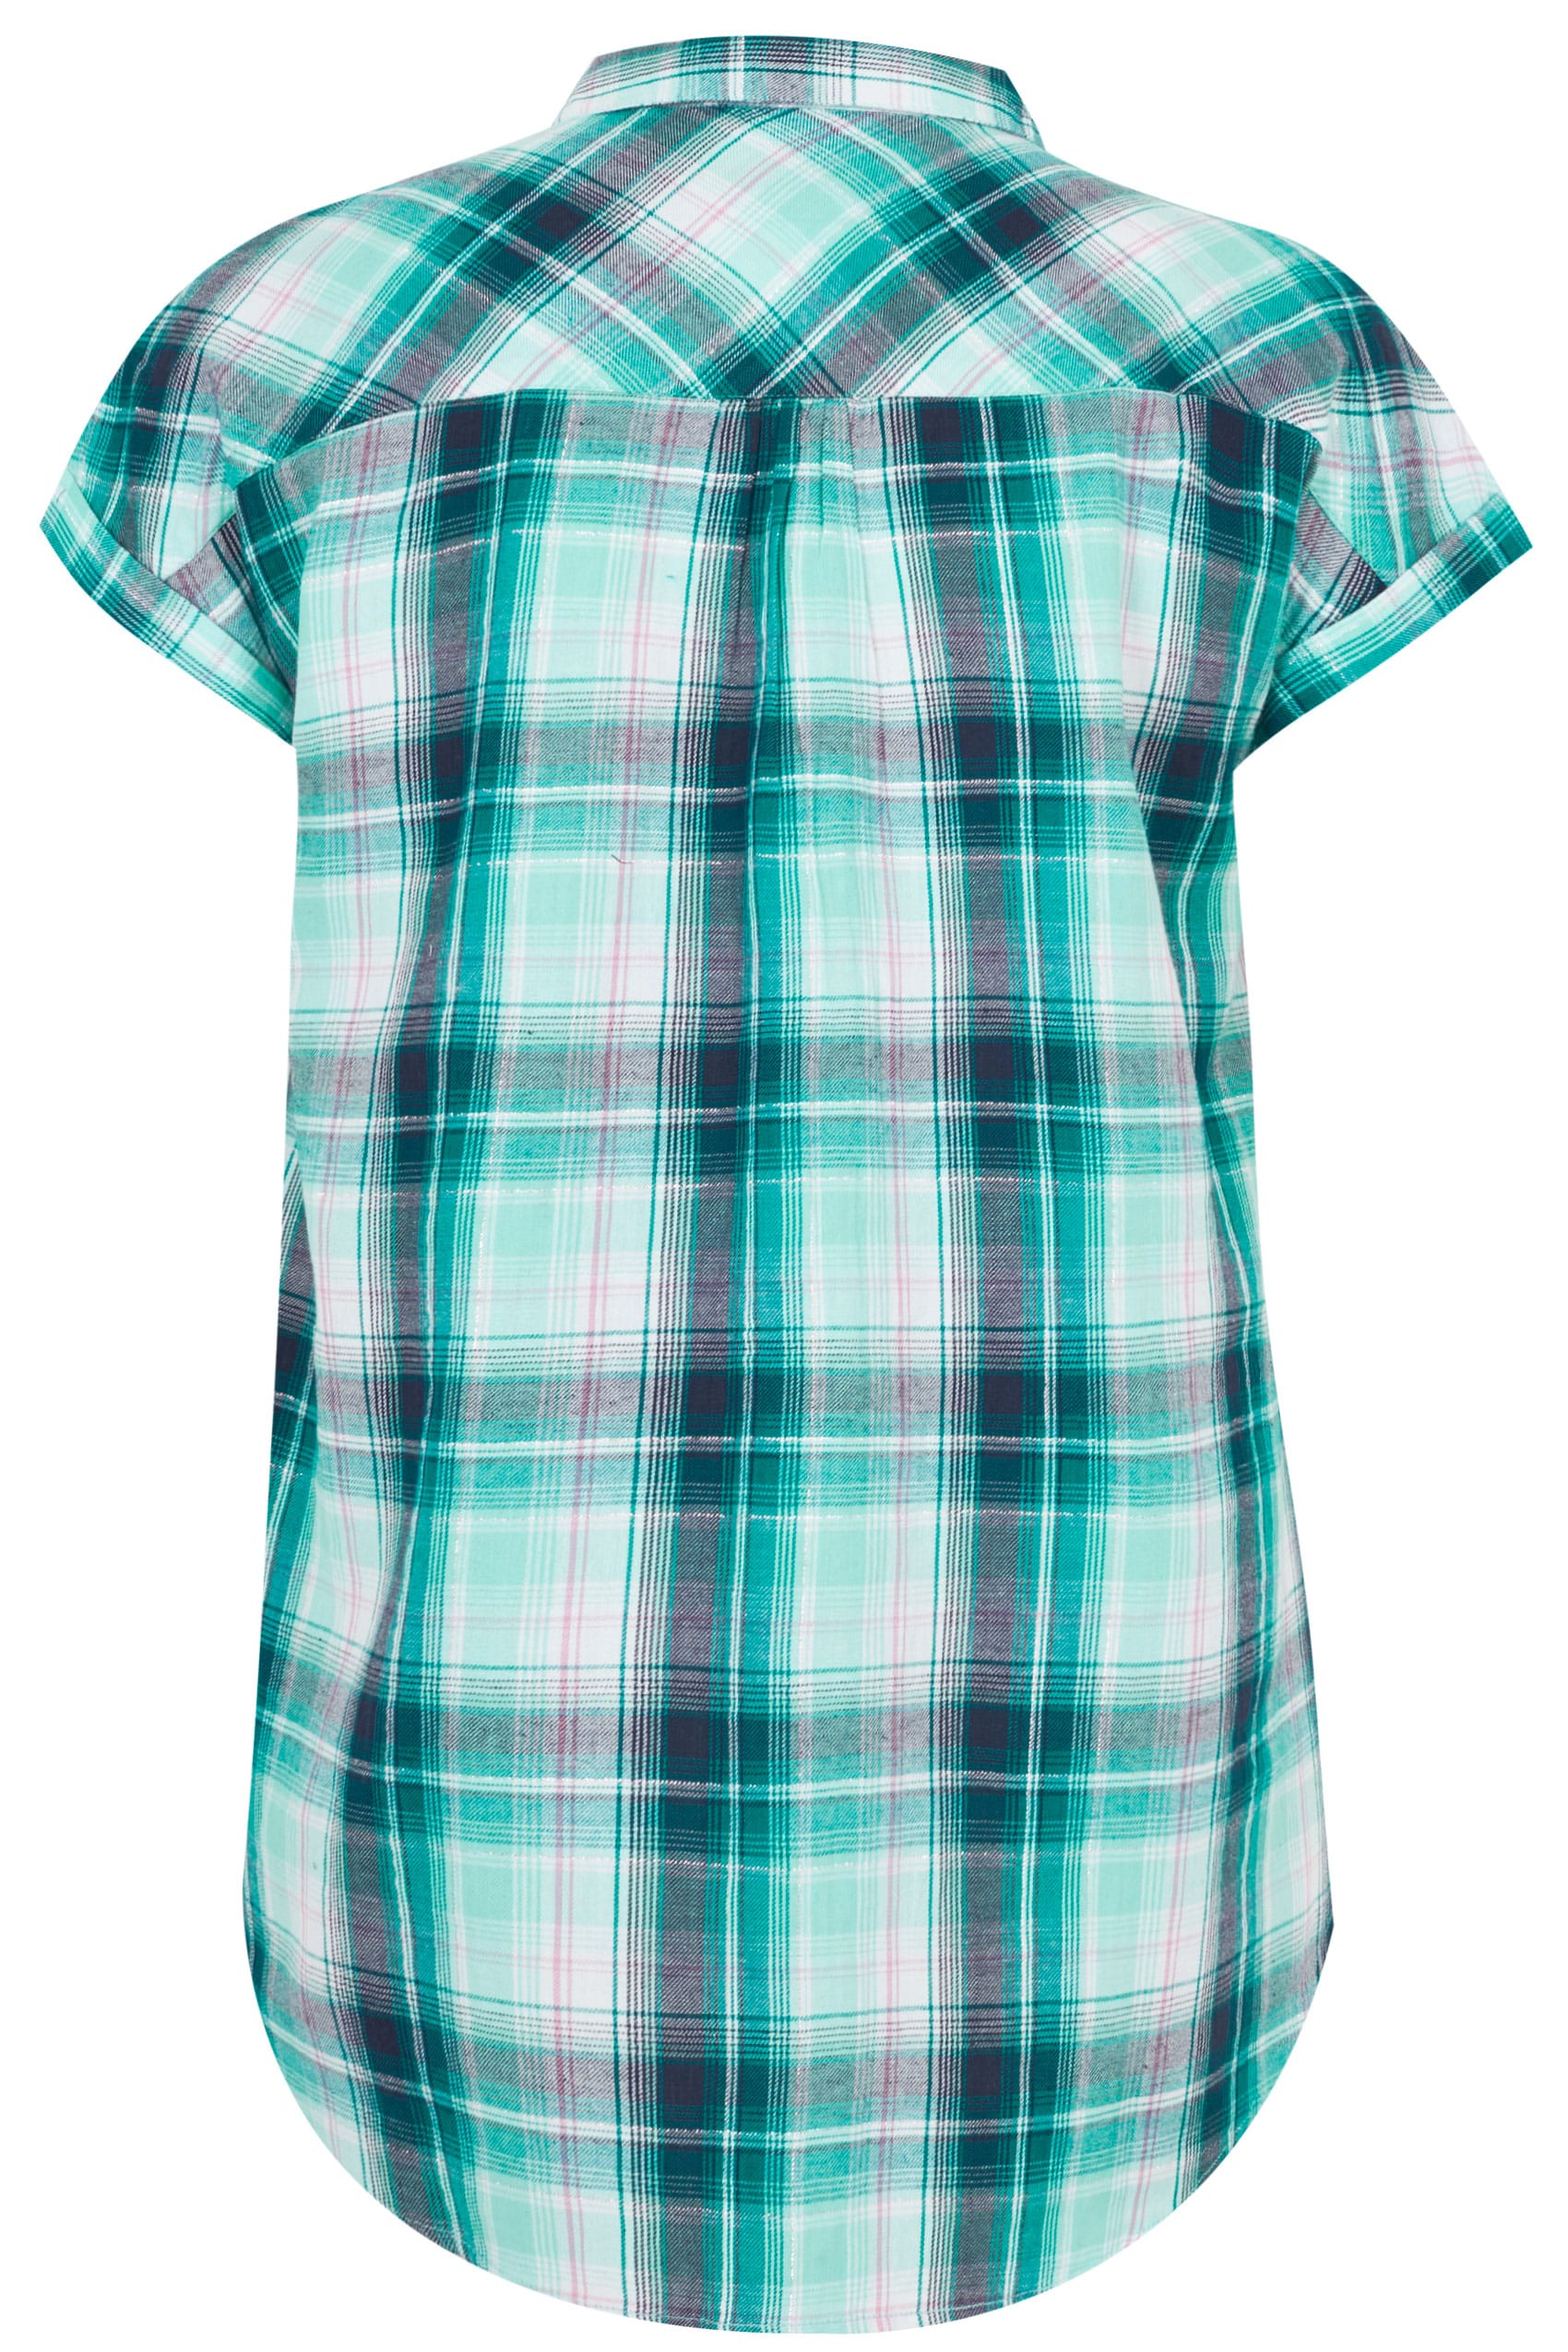 blue amp green pastel checked shirt with short grownon